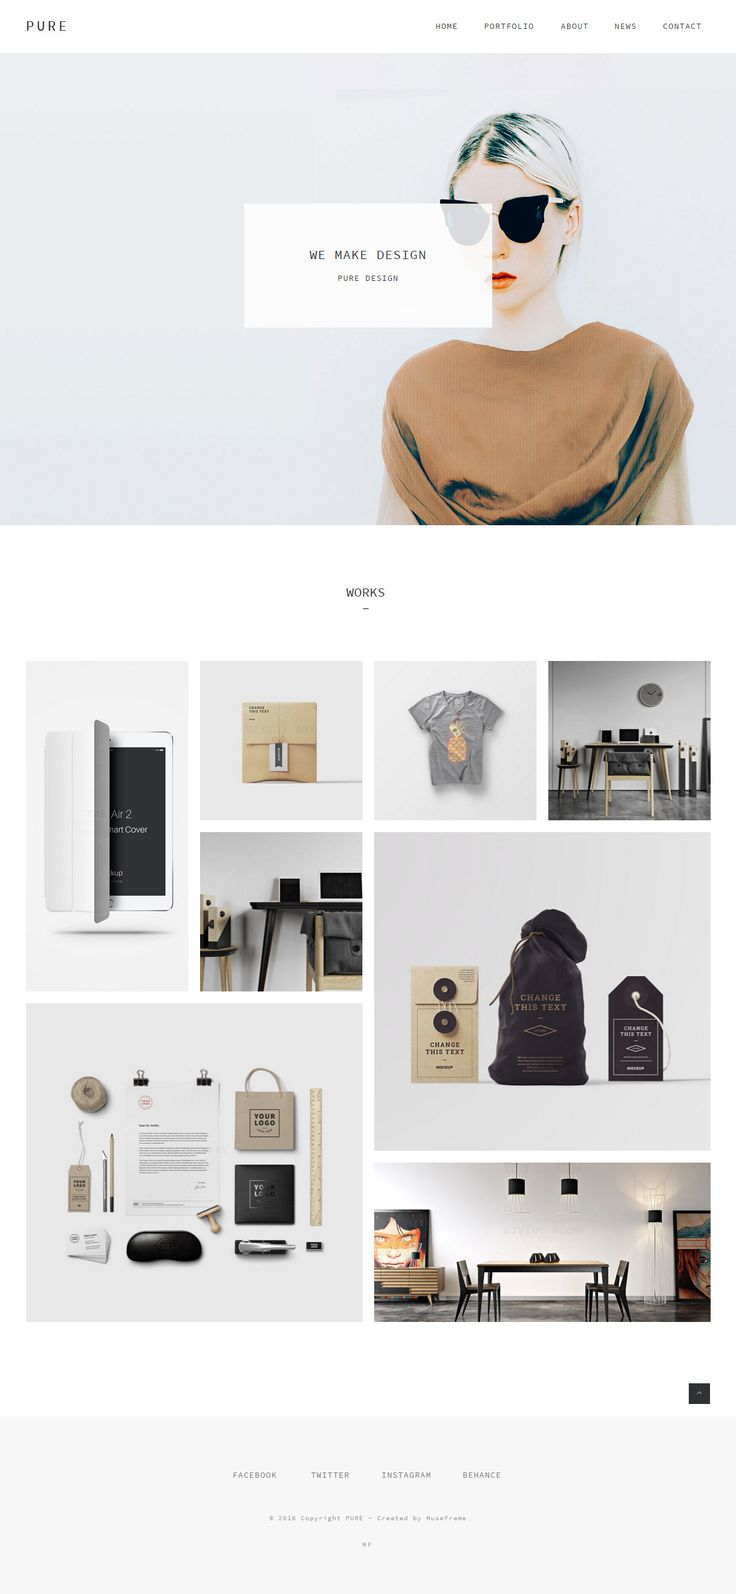 Pure is Premium #Muse Multipurpose Template. #ParallaxScrolling. #RevolutionSlider. Font Awesome. CSS3 Animation. Test free demo at: http://www.responsivemiracle.com/pure-premium-responsive-creative-portfolio-muse-template/